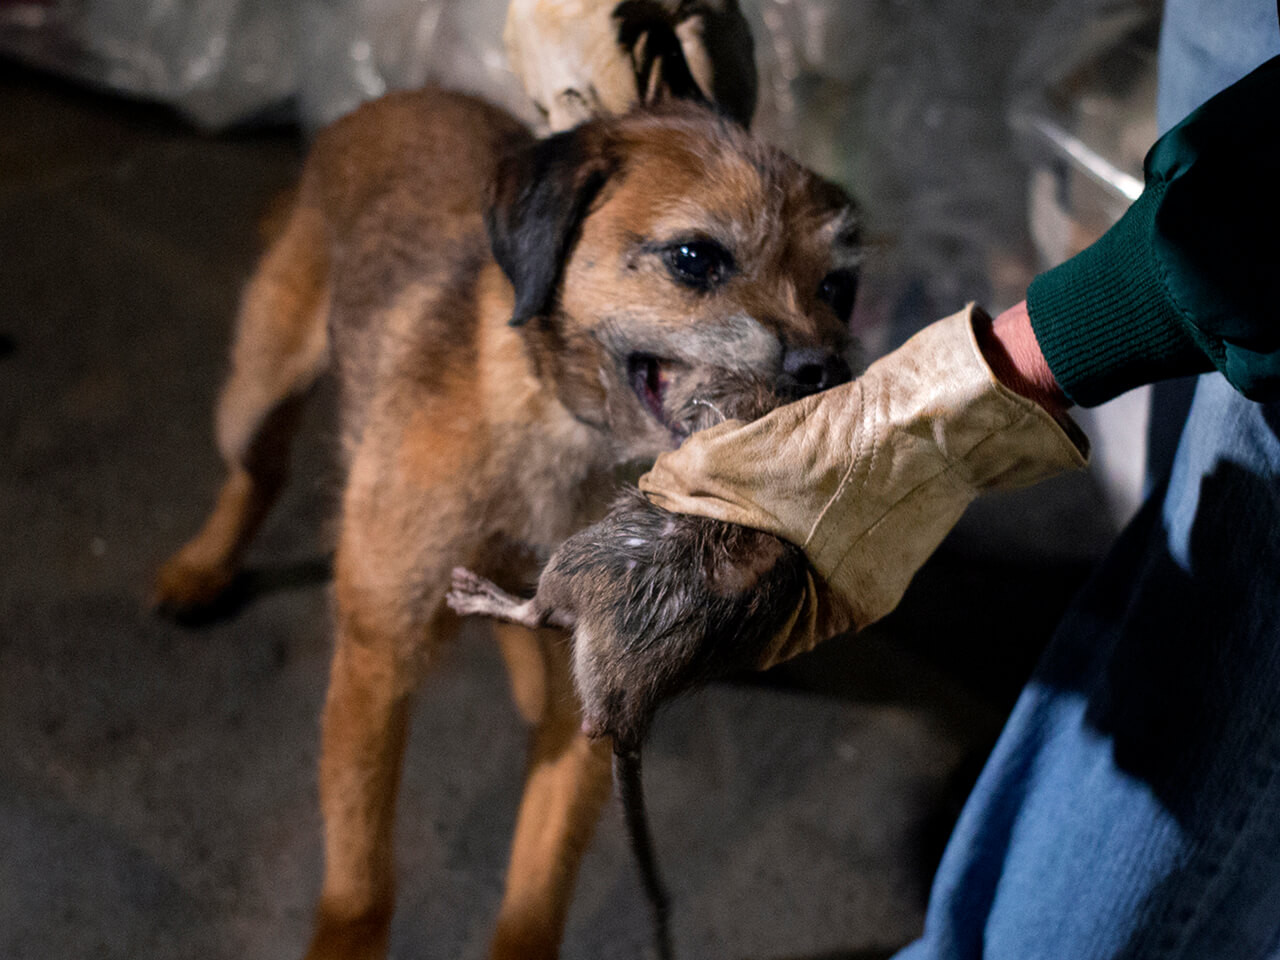 Susan Friedenberg of New York takes a rat from Tanner, her Border Terrier, that caught the rodent as a group of dog owners gathered in lower Manhattan to let their various breeds hunt rats in New York Friday, April 26, 2013. (AP Photo/Craig Ruttle)